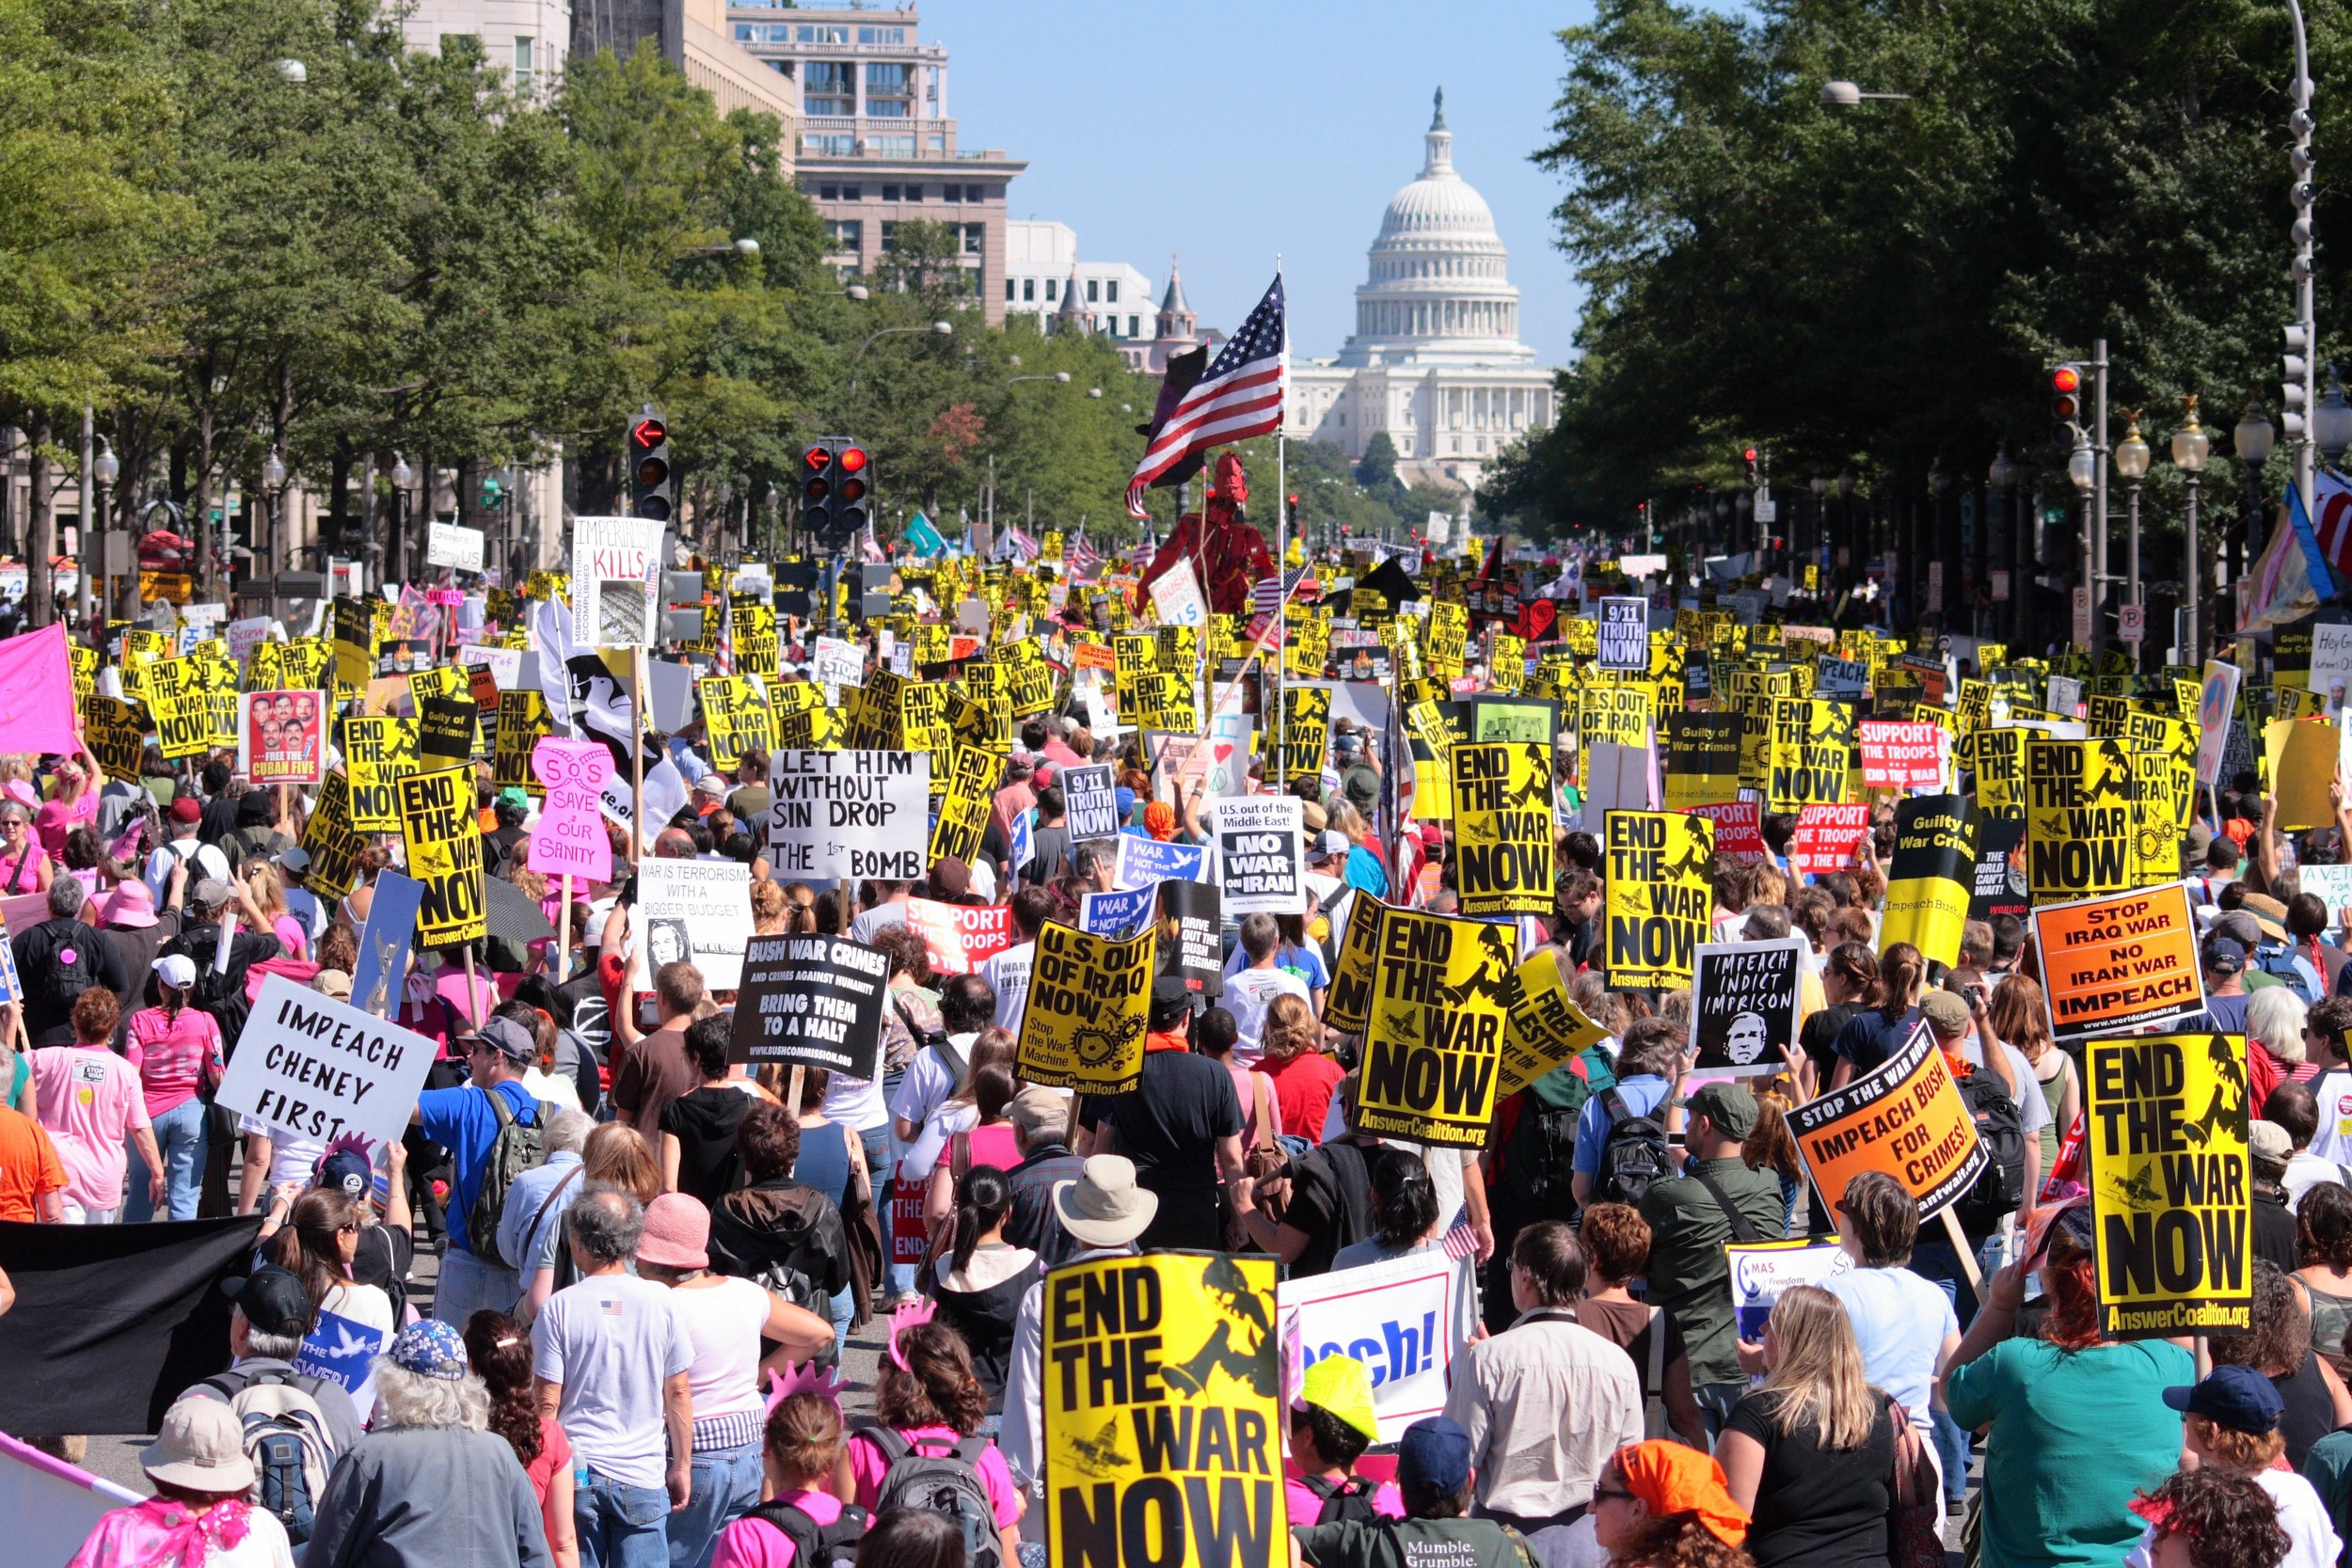 September 2007 Anti-Iraq War Protest, organized by theVeterans for Peace and the Answer Coalition